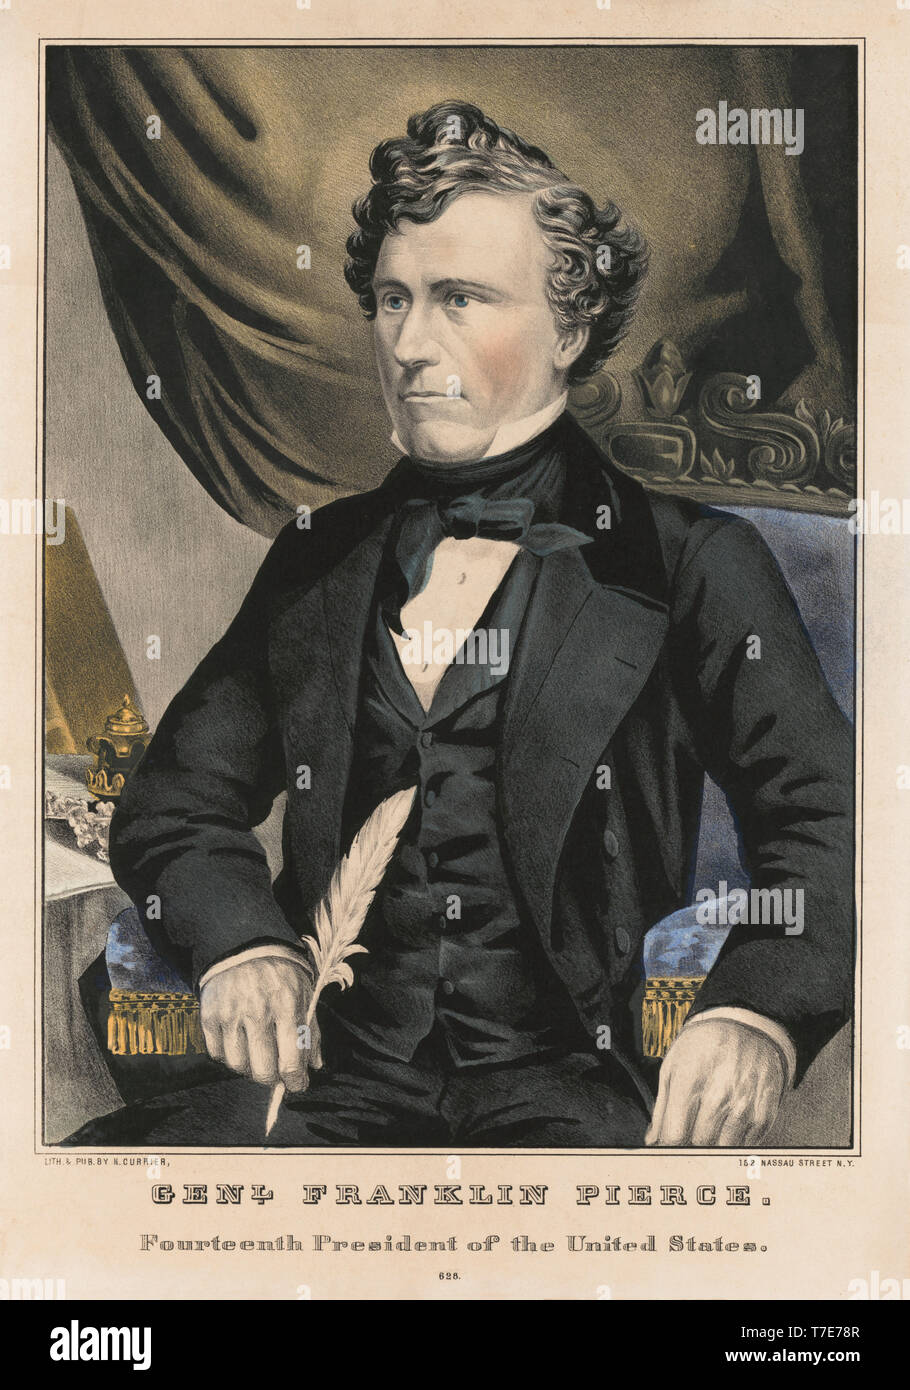 General Franklin Pierce, Fourteenth President of the United States, Lithograph by Nathaniel Currier, 1852 - Stock Image